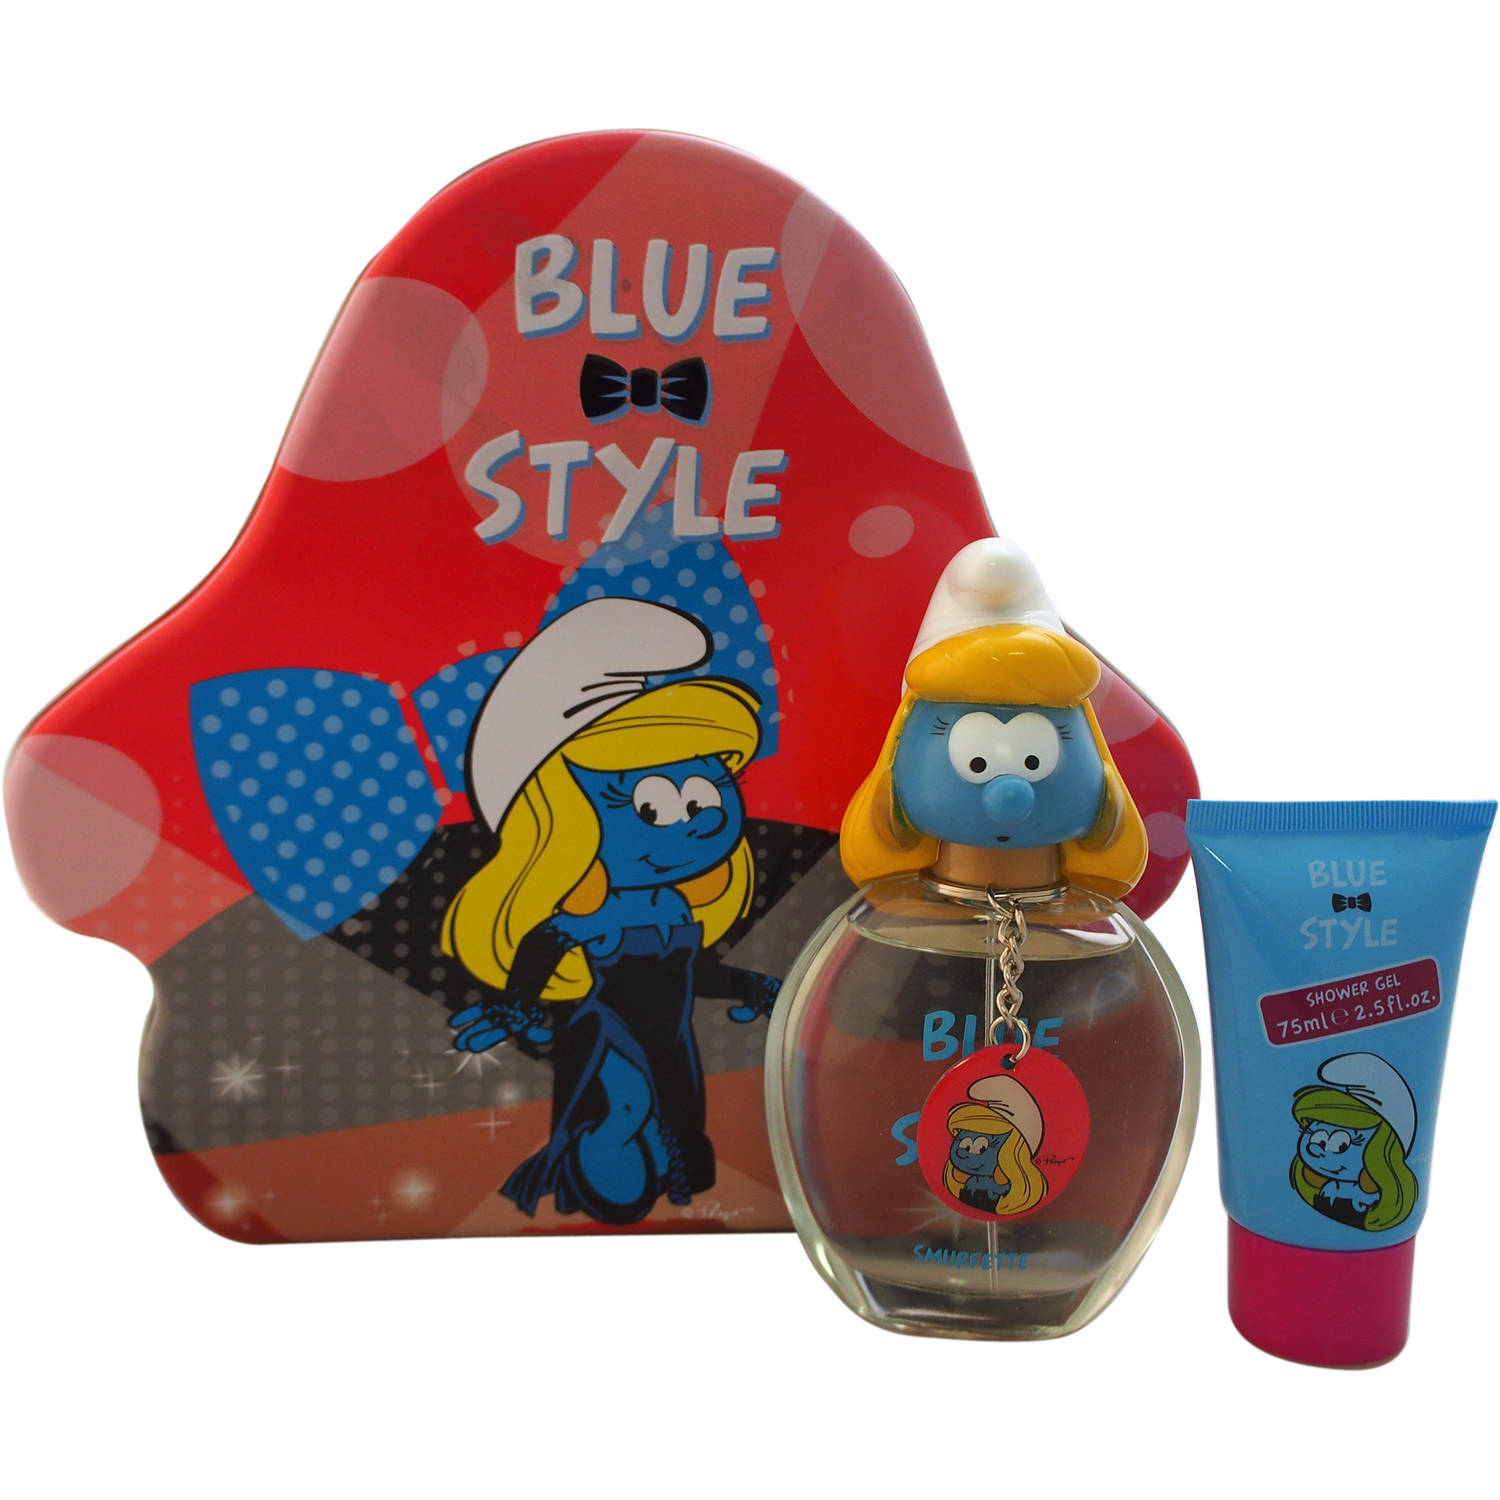 First American Brands The Smurfs Blue Style Smurfette Gift Set for Kids, 3 pc